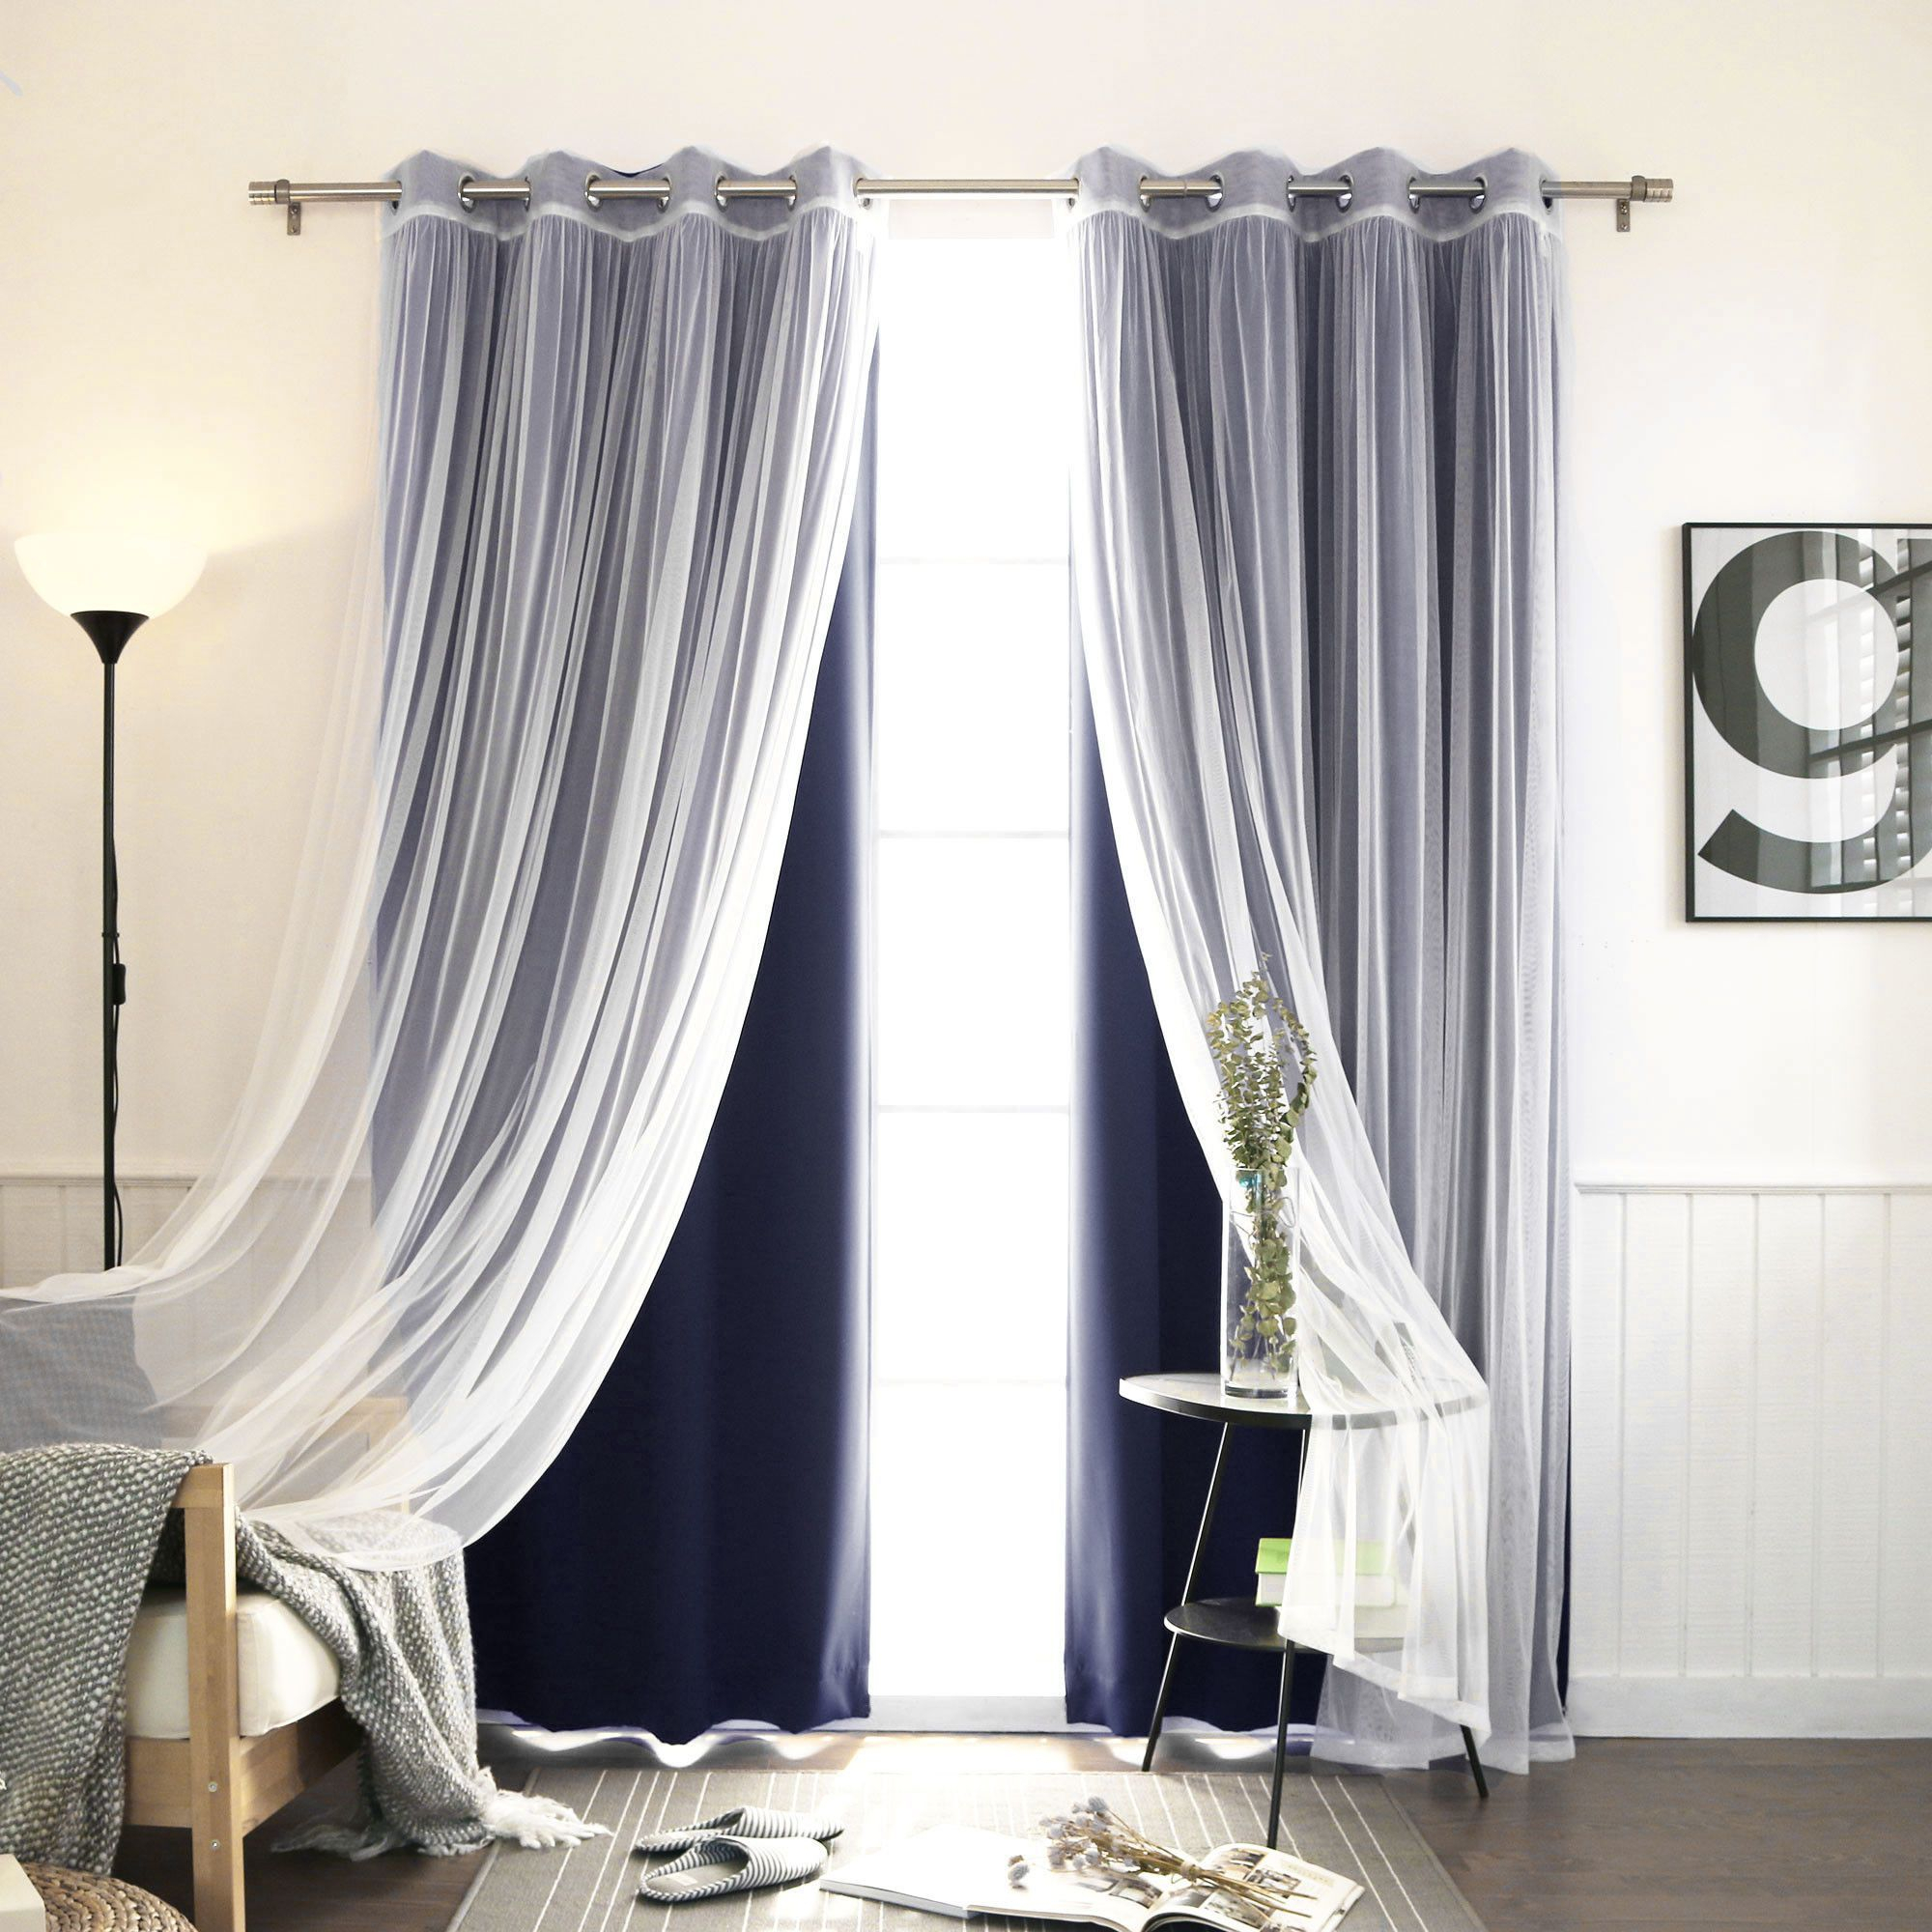 Modern Sheer Curtain Panels With Designs – Creative Design Ideas For Tulle Sheer With Attached Valance And Blackout 4 Piece Curtain Panel Pairs (View 24 of 30)